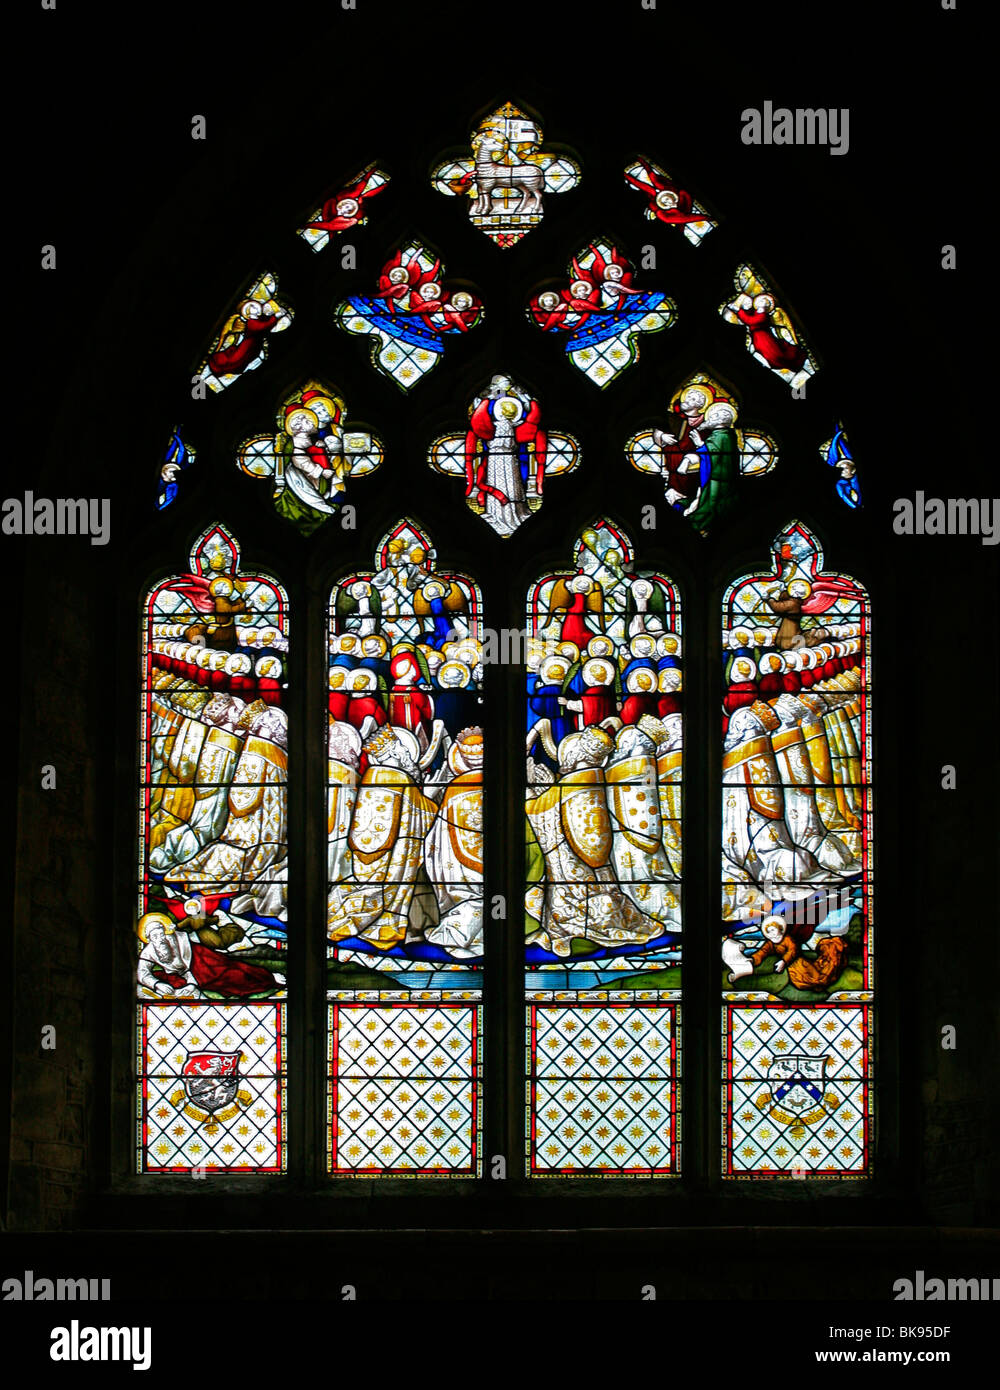 East Stained Glass Window by Lavers Barraud and Westlake, Church of St Mary the Virgin, Cropredy, Oxfordshire - Stock Image